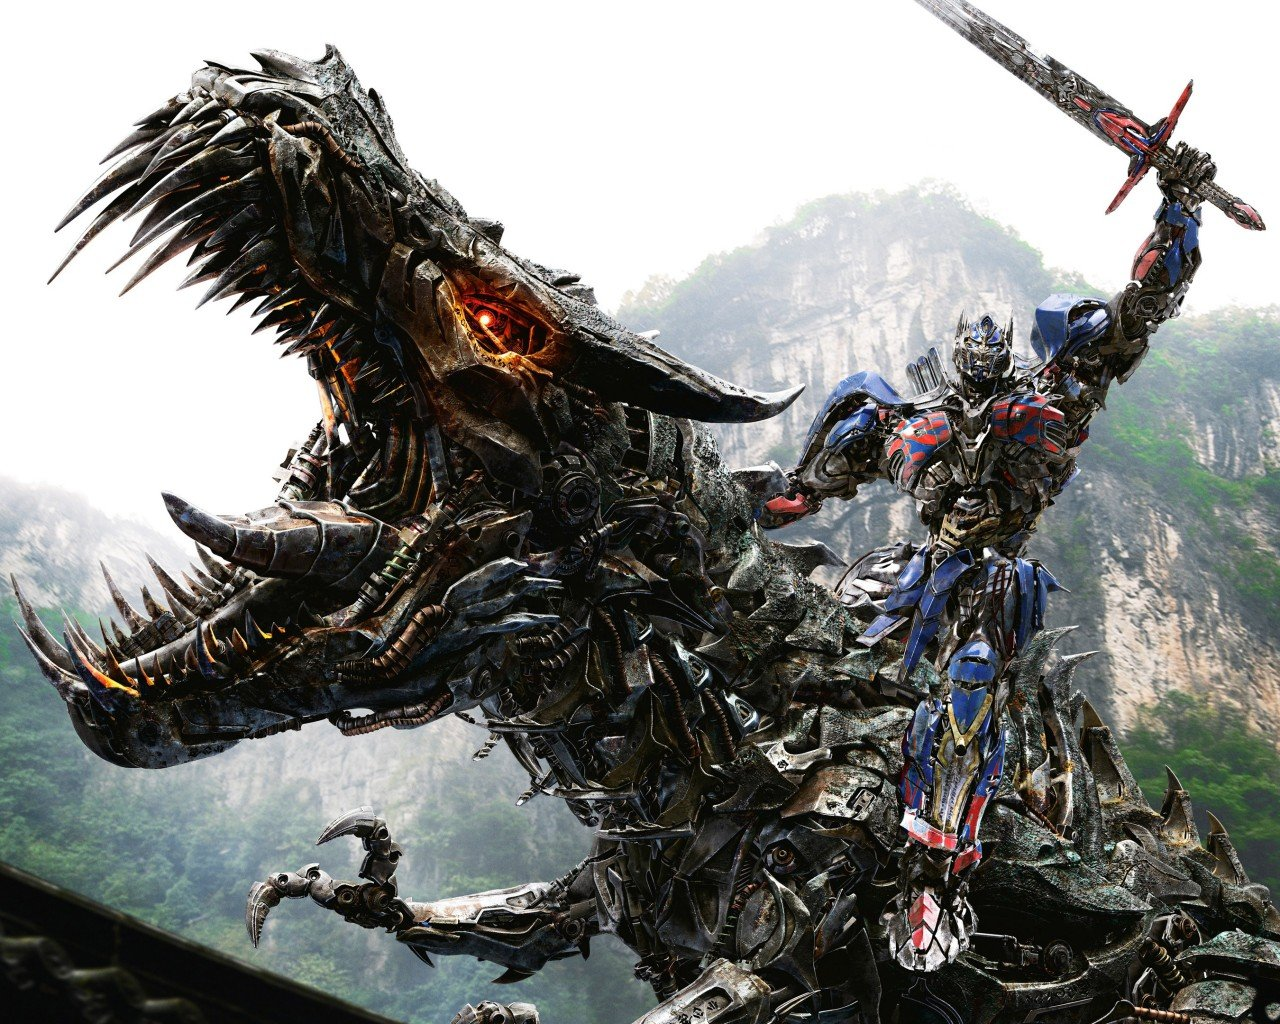 Paramount: Yearly Transformers Sequels in 2017, 2018, 2019 ...